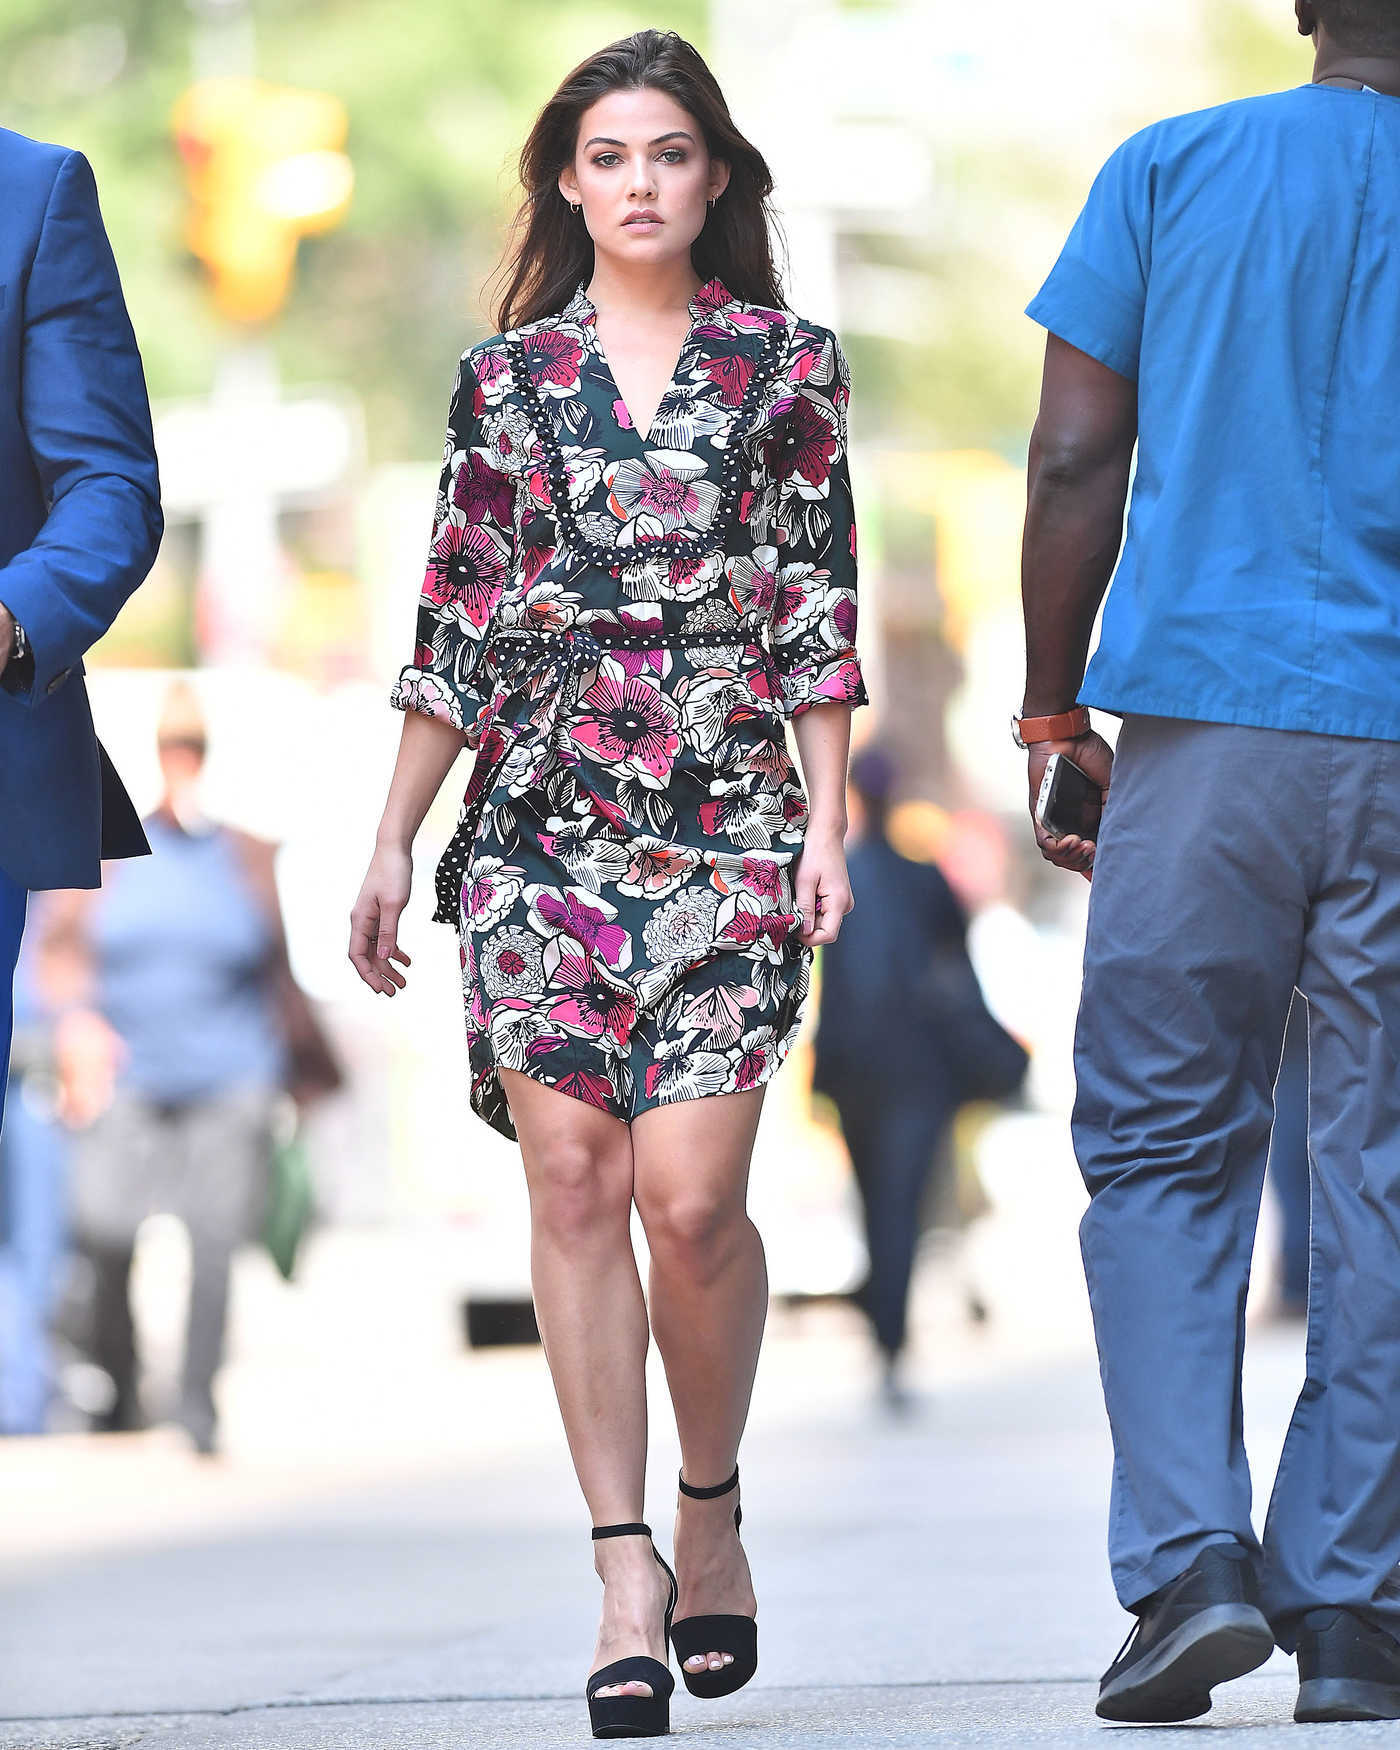 Danielle Campbell Wears a Floral Dress in NYC 09/06/2017